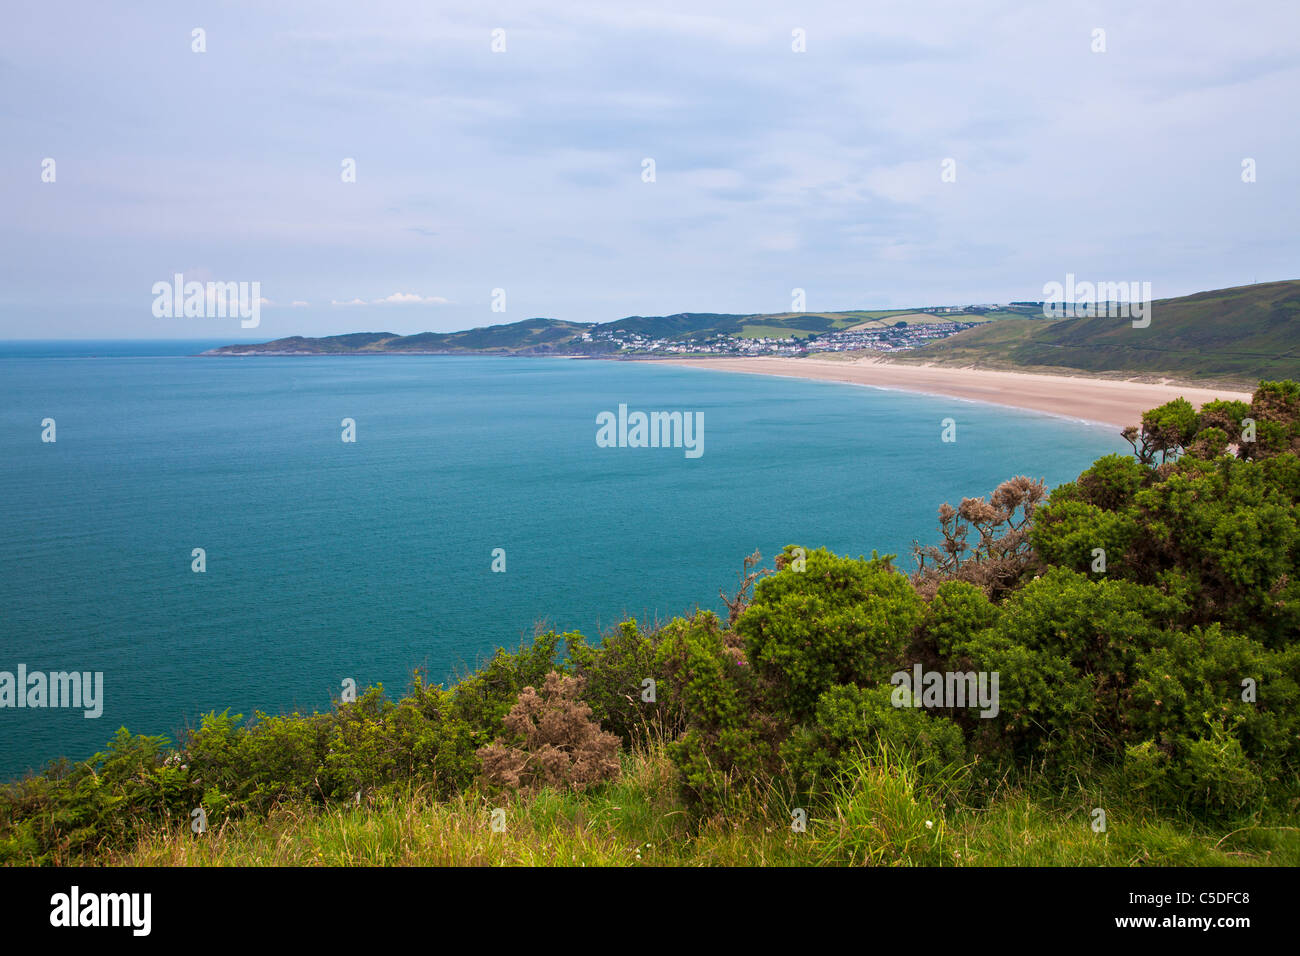 View towards Woolacombe and Woolacombe Sands taken from the coastal path near Croyde, North Devon, England, UK Stock Photo